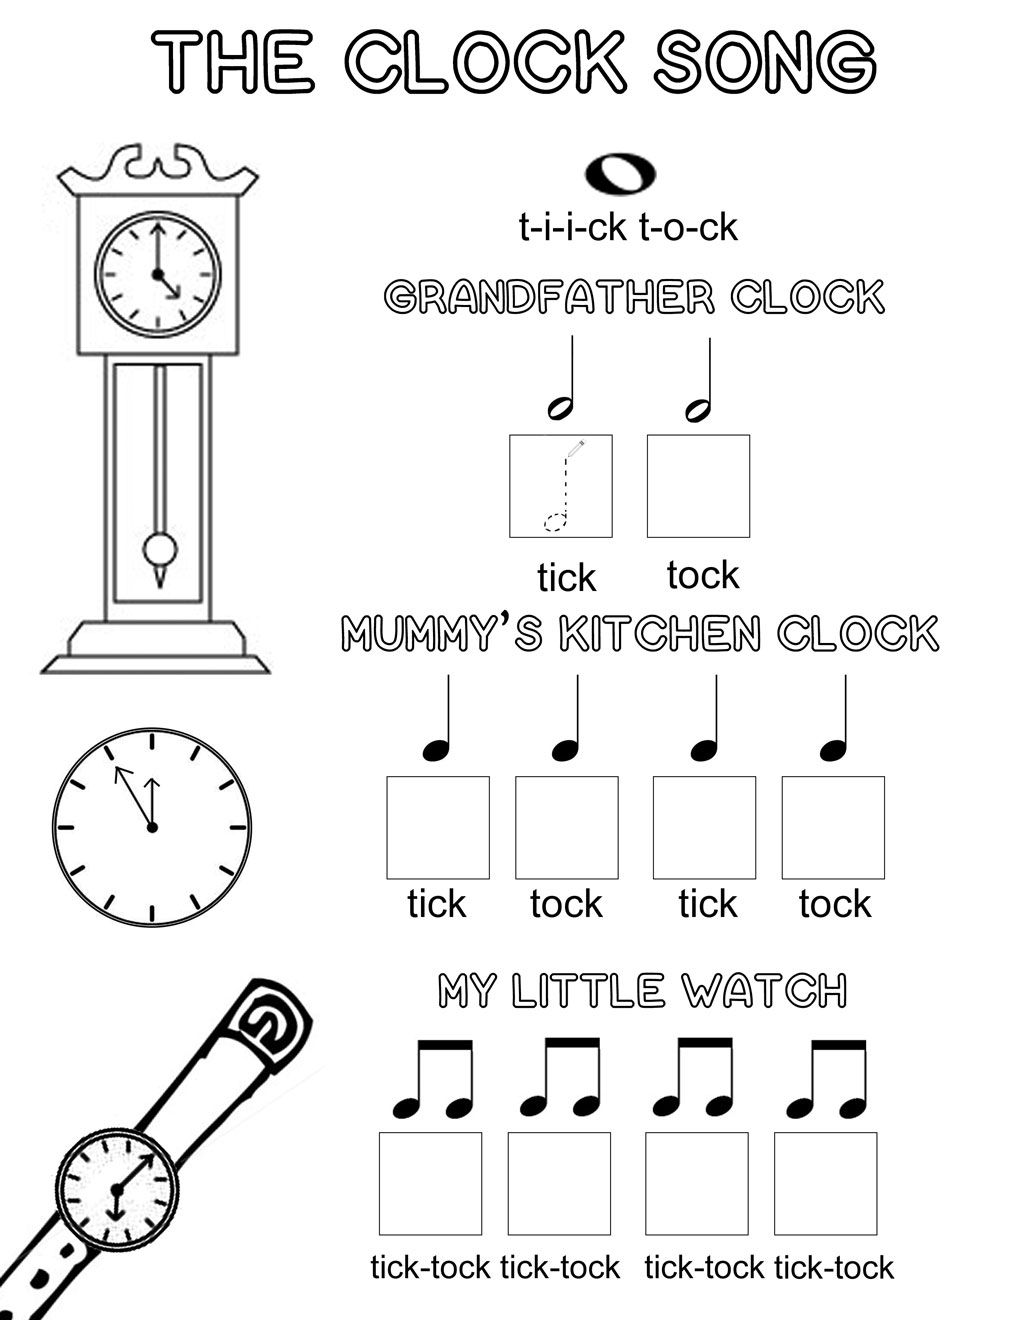 Color theory worksheet for kids - Let S Play Music Free Music Theory Worksheet The Clock Song A Fun Way